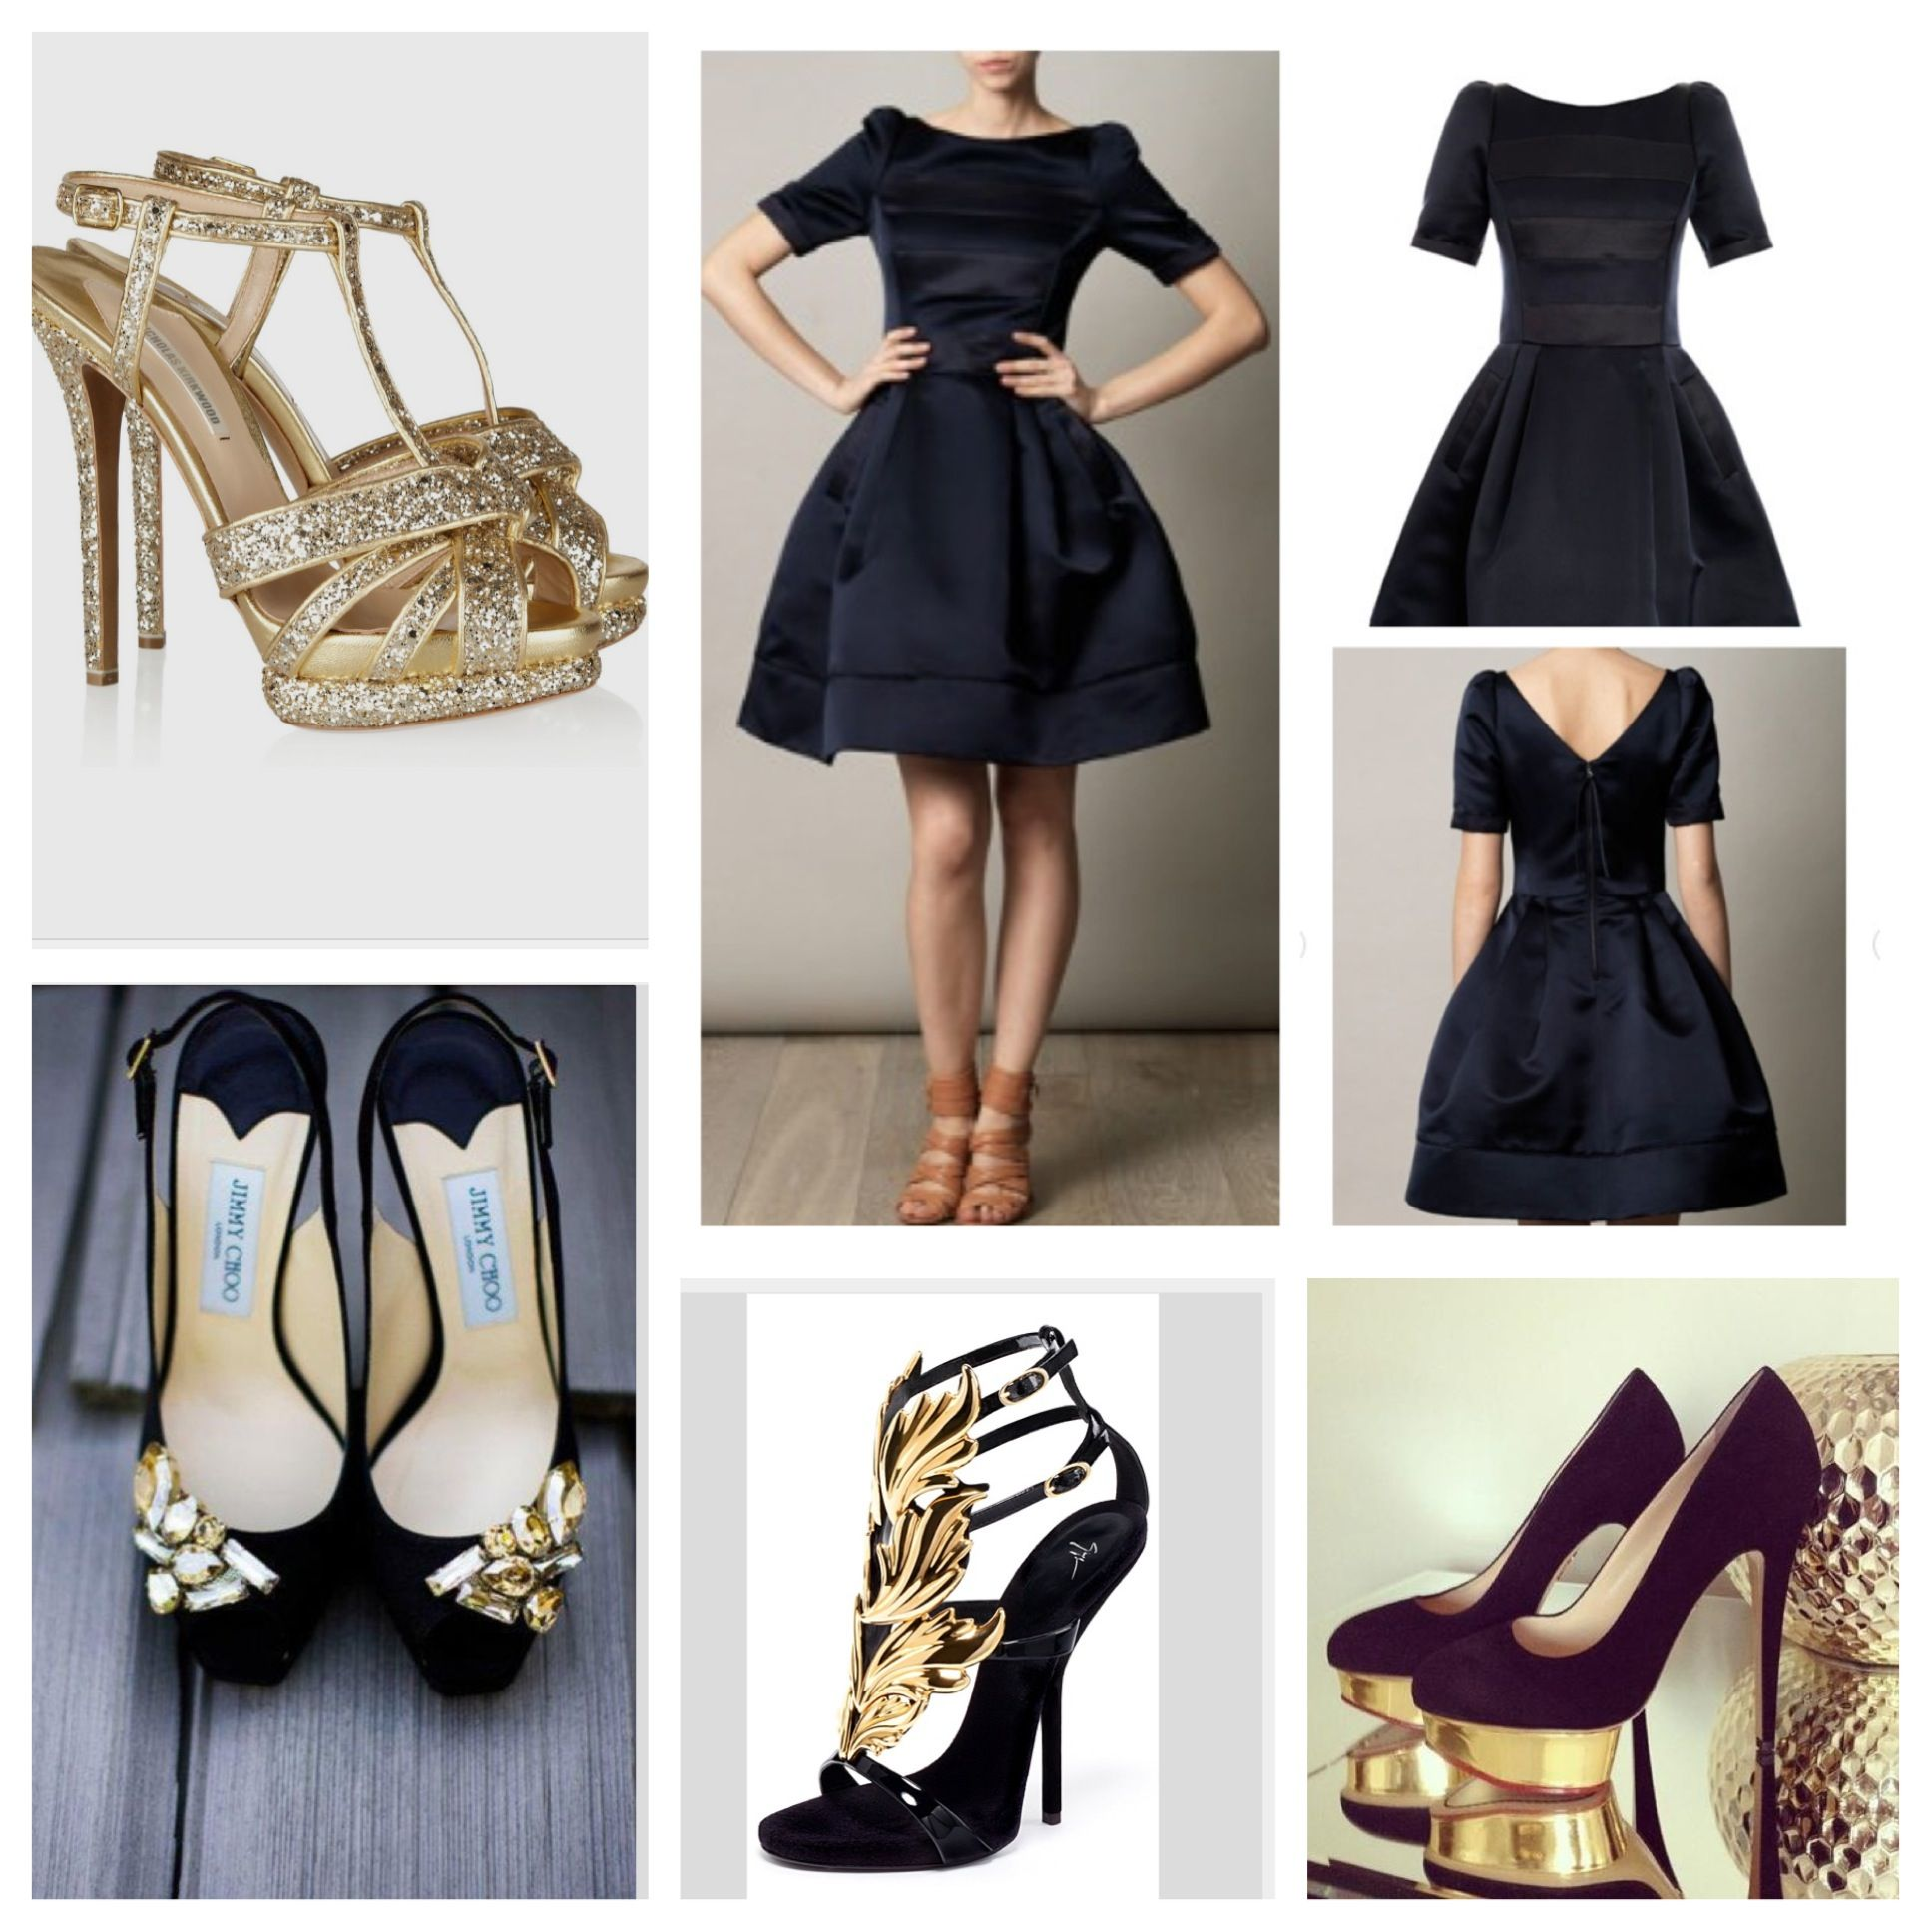 Black dress with black shoes - Black And Gold Shoes And Little Black Dress